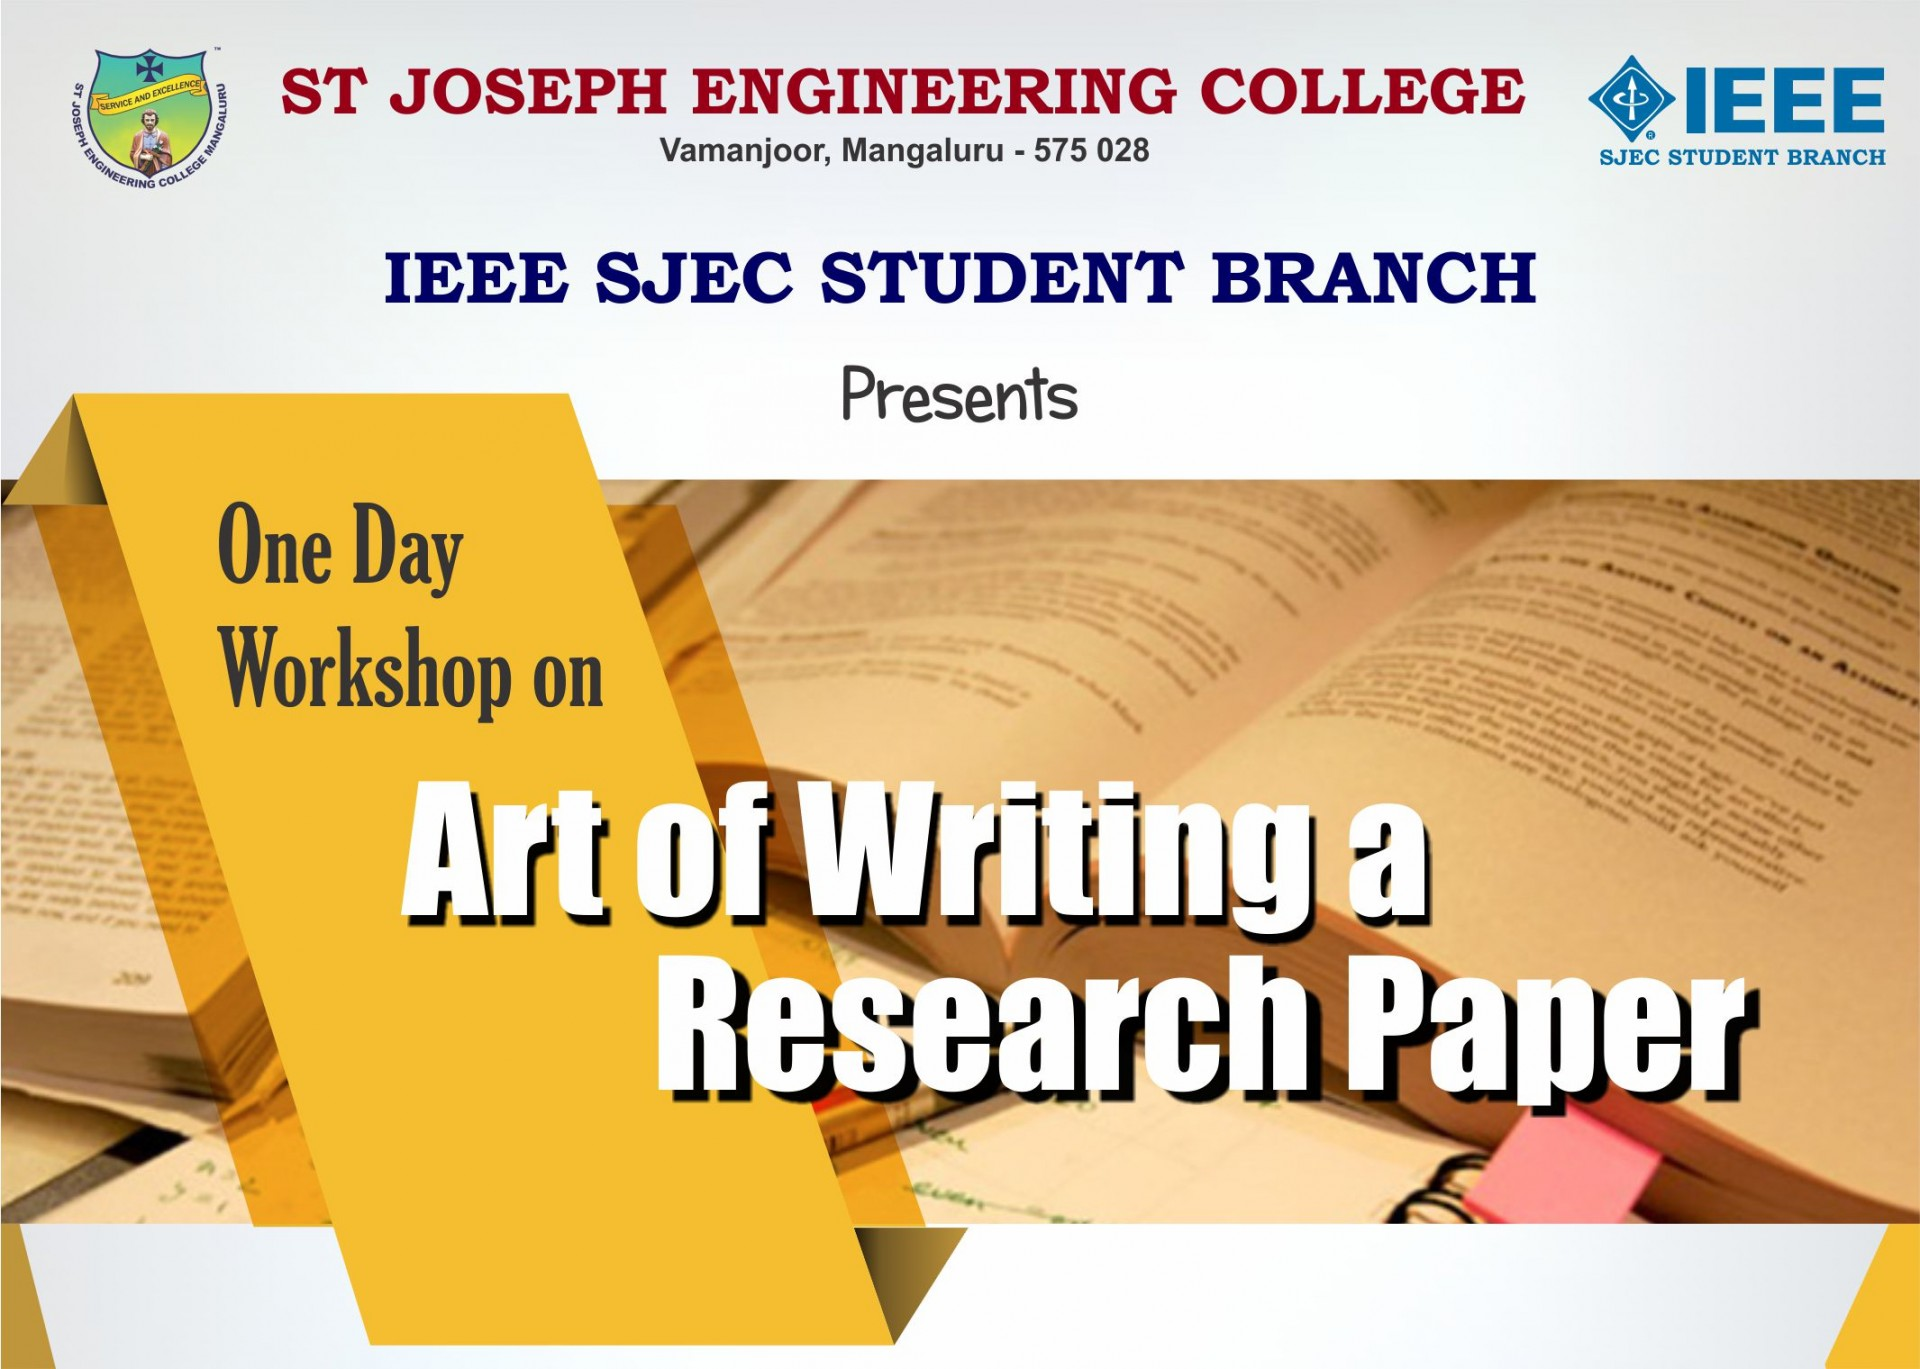 005 Workshop Banner Researchs Writing Fascinating Research Papers Paper Format Example Pdf Software Free Download Ppt 1920